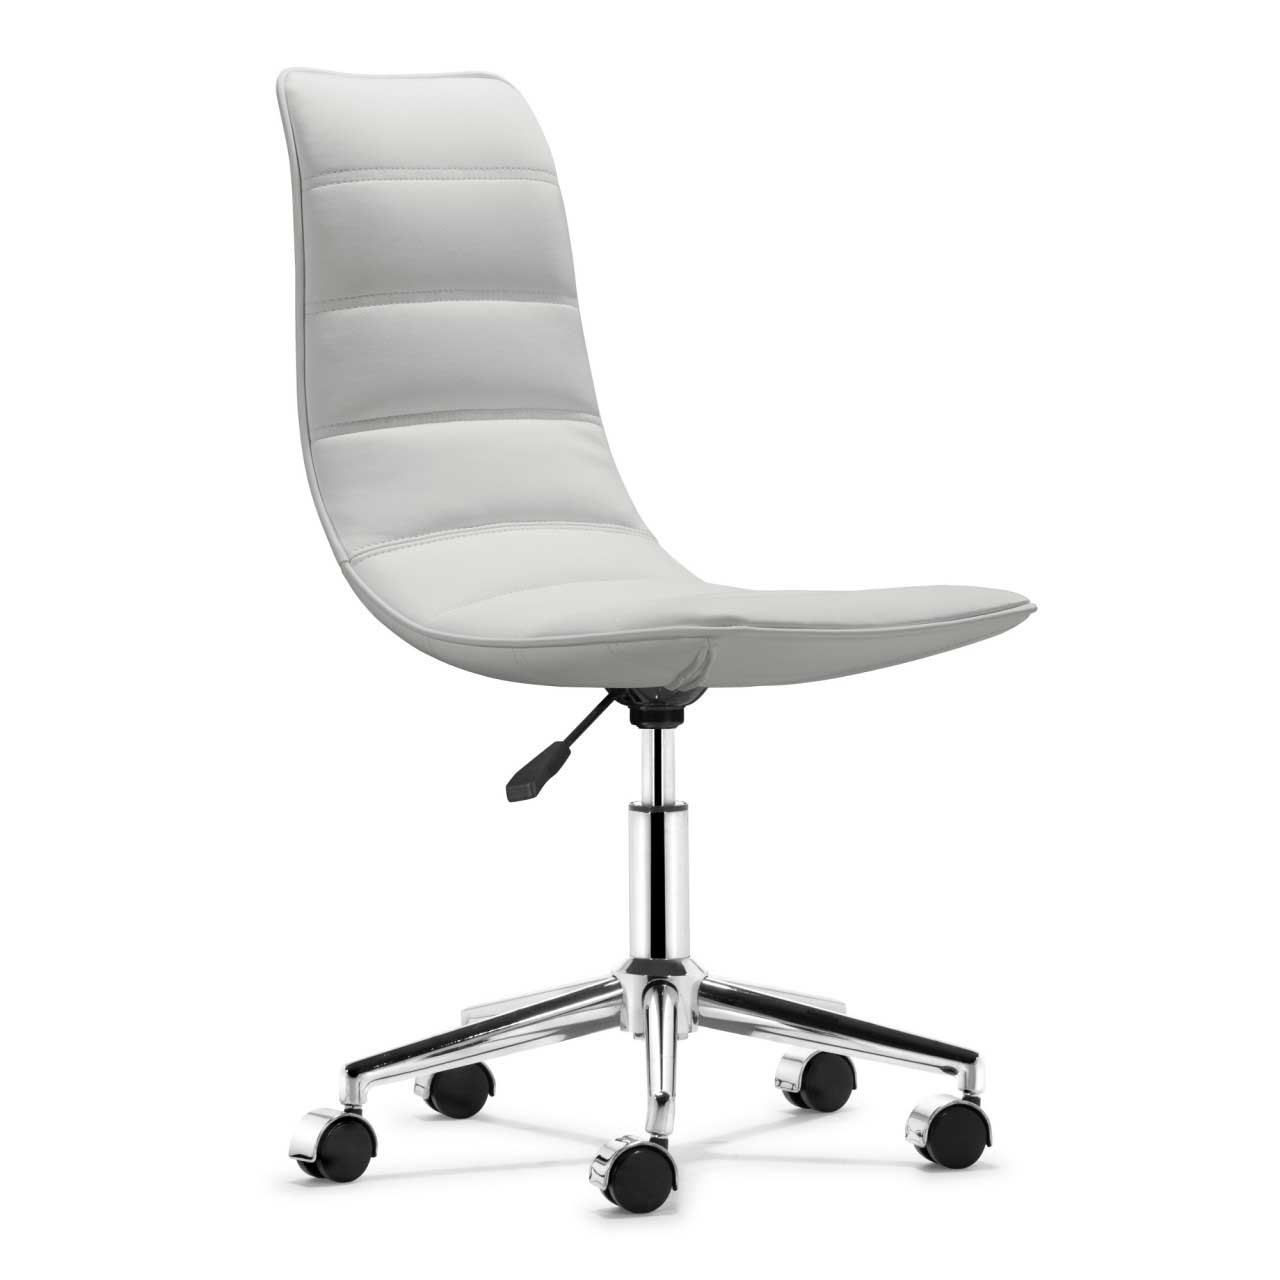 desk chairs white zippered chair covers office design and style